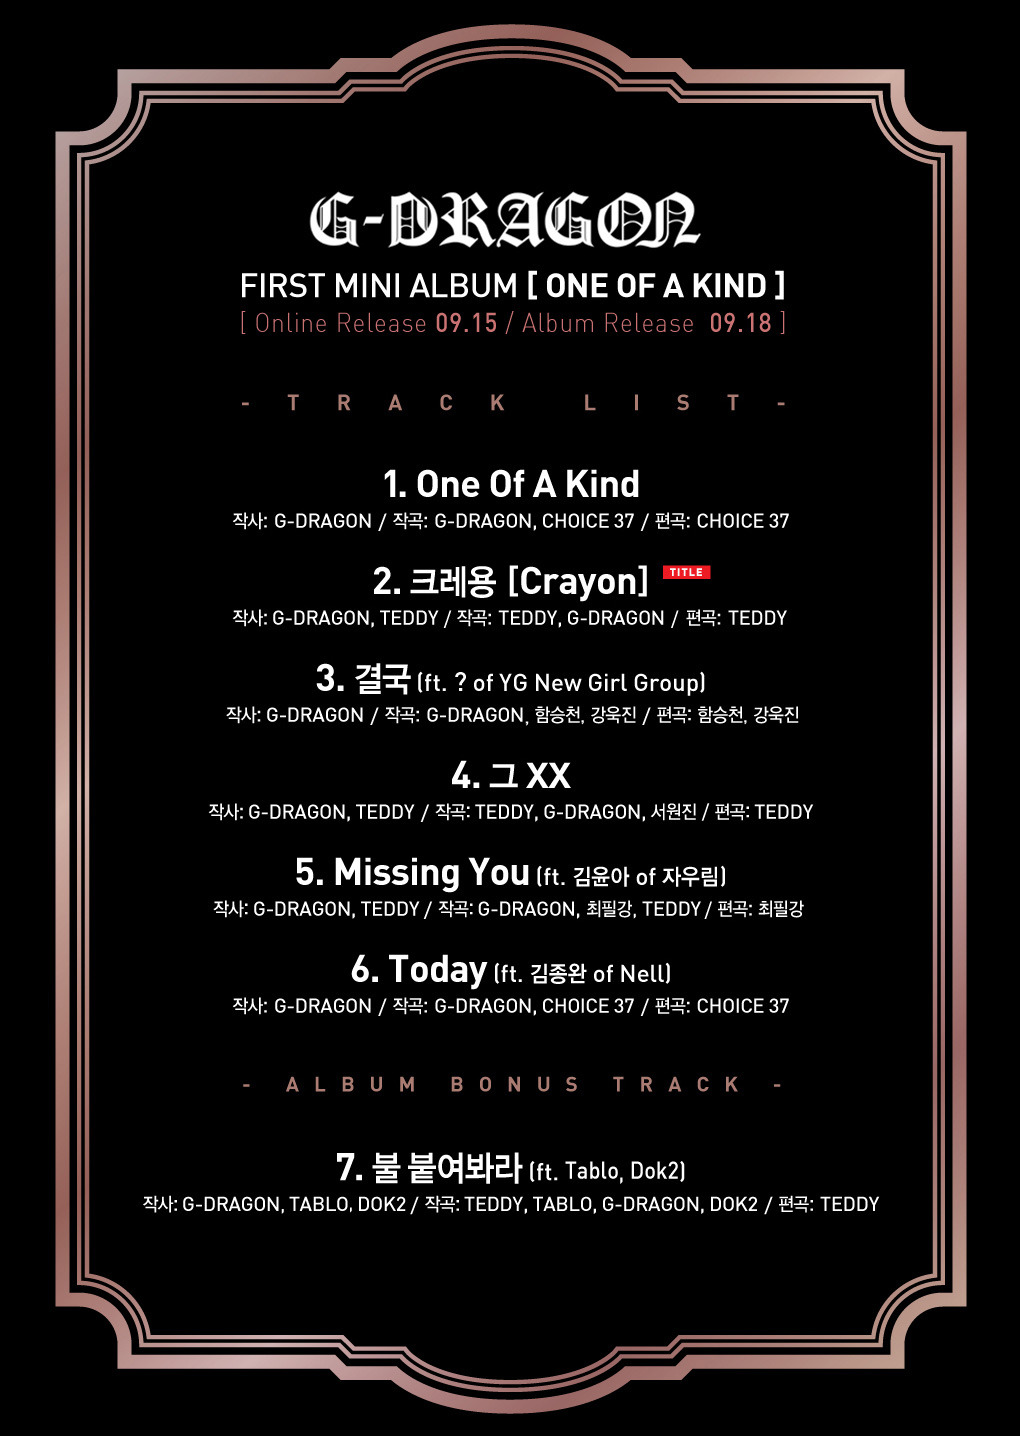 "YG Life Update: G-Dragon's First Mini Album ""One of A Kind"" Track List (120903) Online release: September 15 Album release: September 18 Tracklist:  1. One of A Kind- Lyric: G-Dragon 